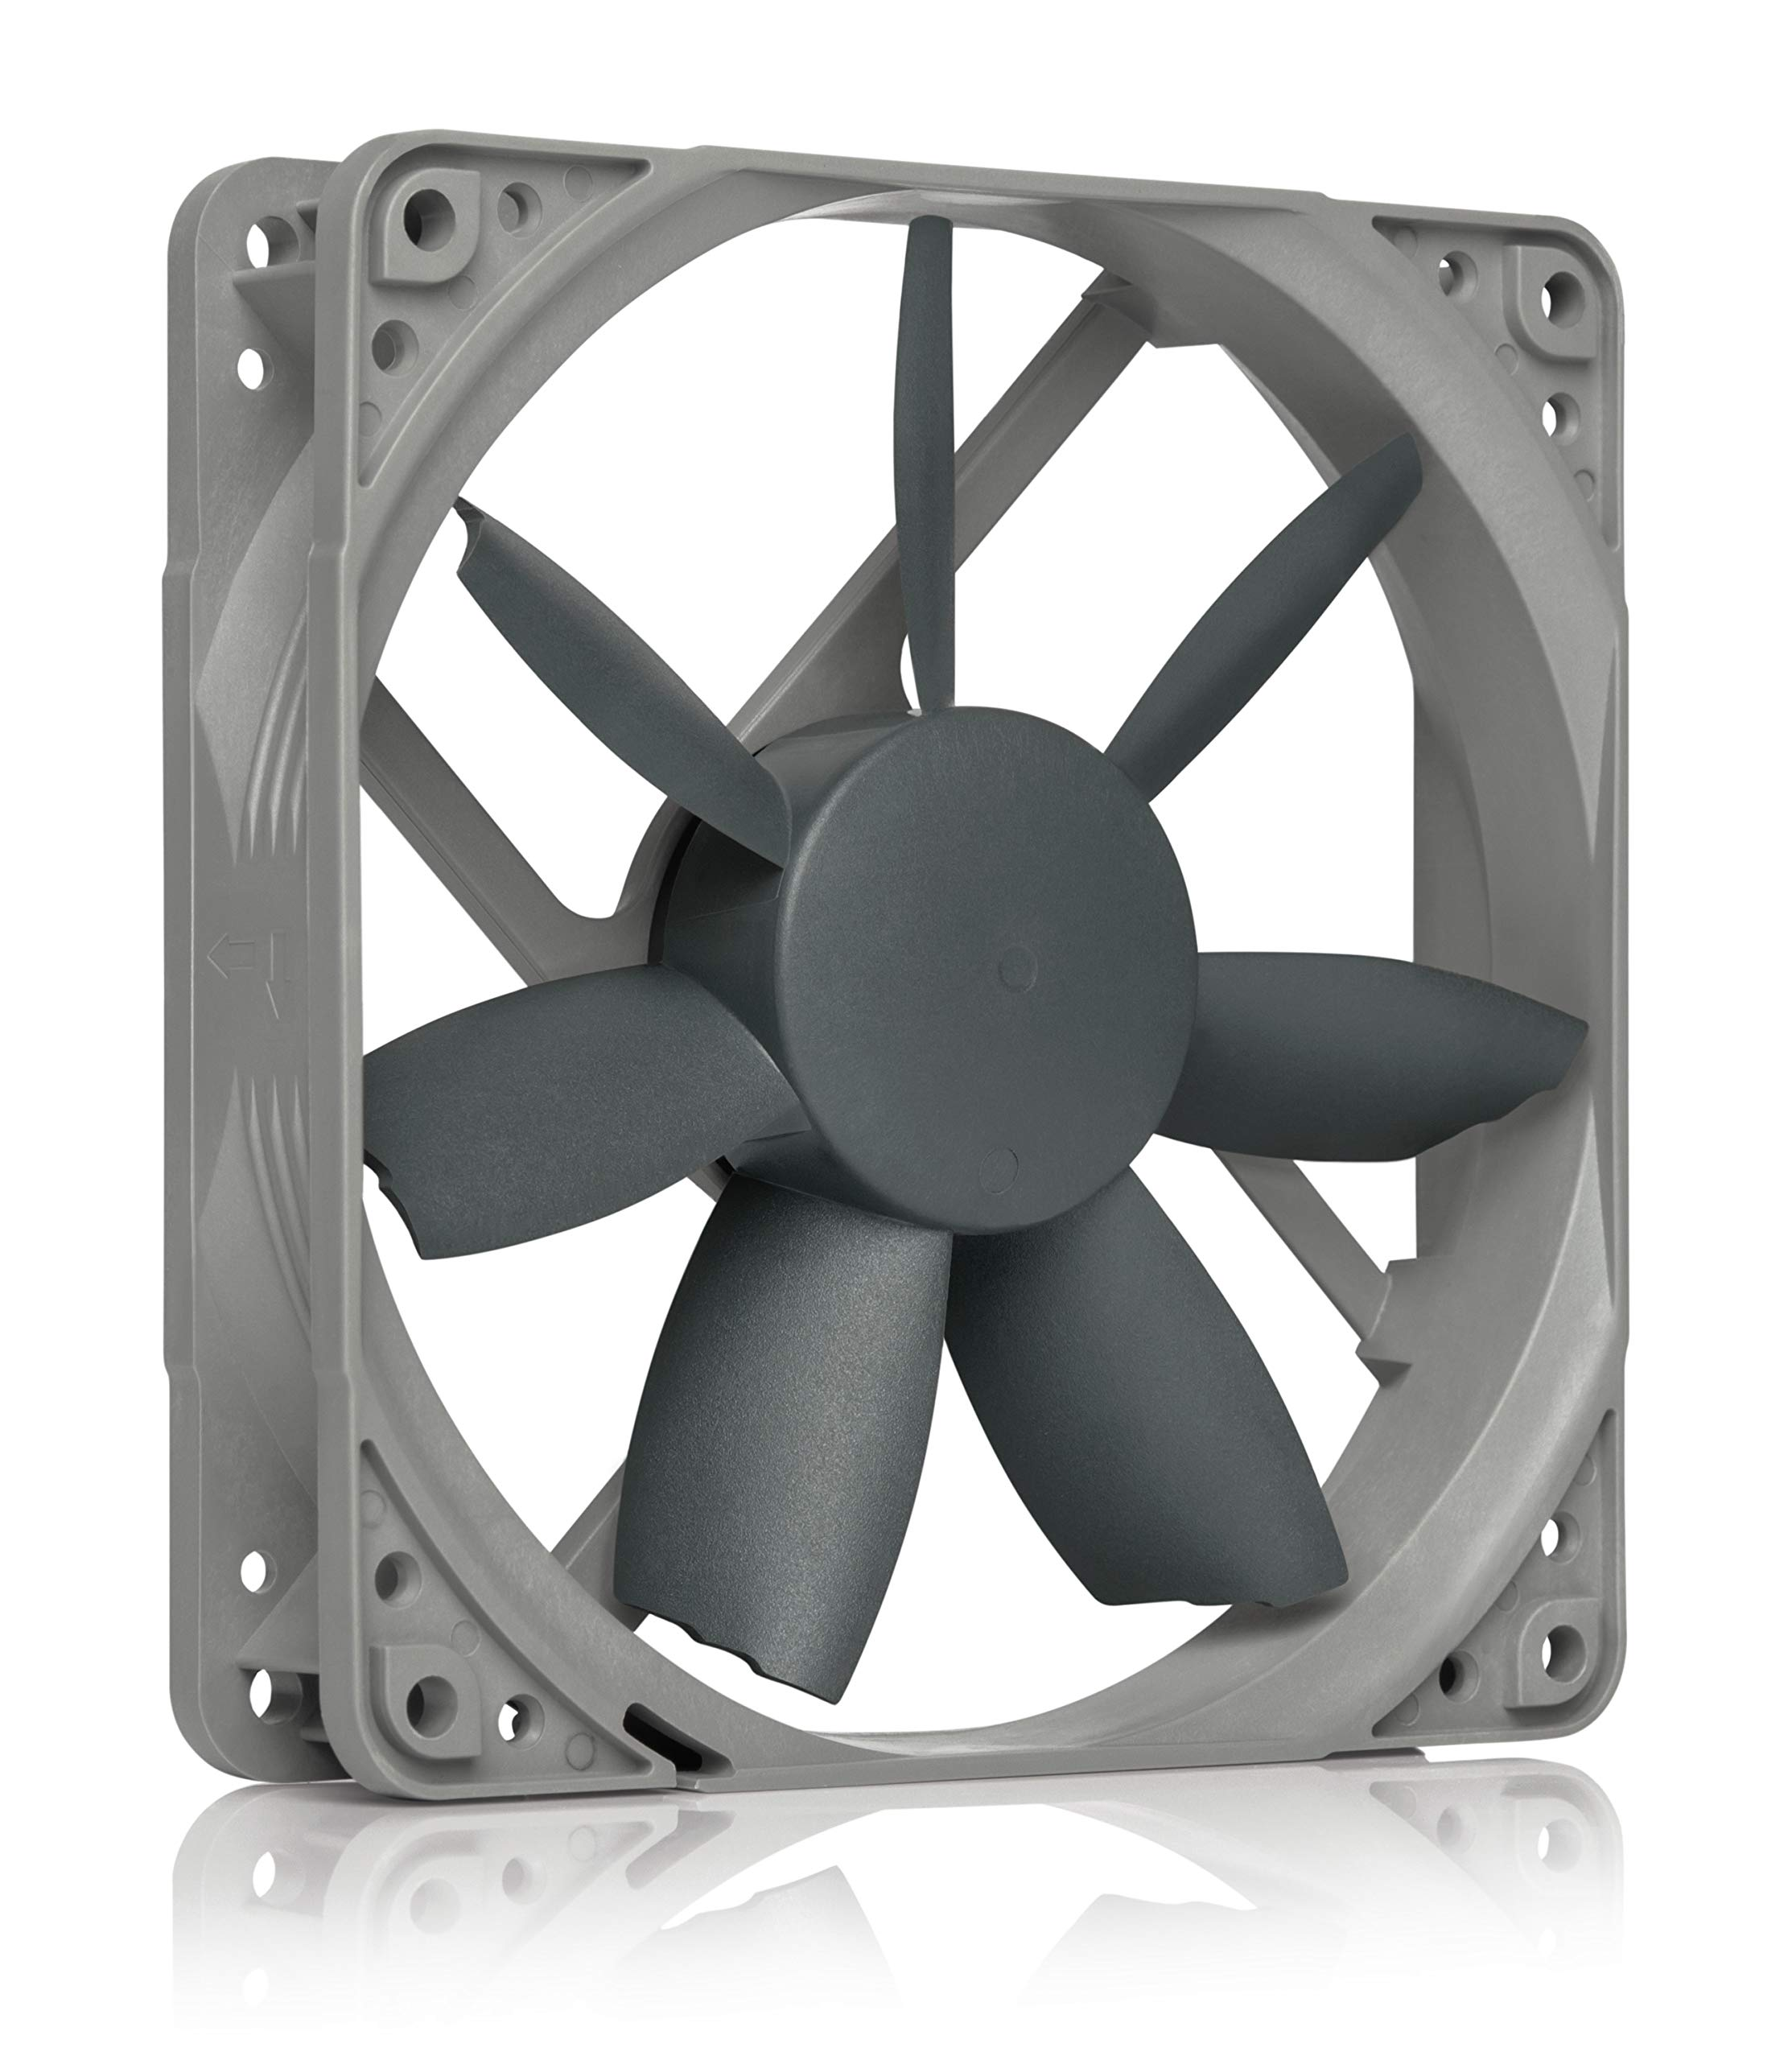 Noctua NF-S12B redux-1200 PWM, High Performance Cooling Fan, 4-Pin, 1200 RPM (120mm, Grey)